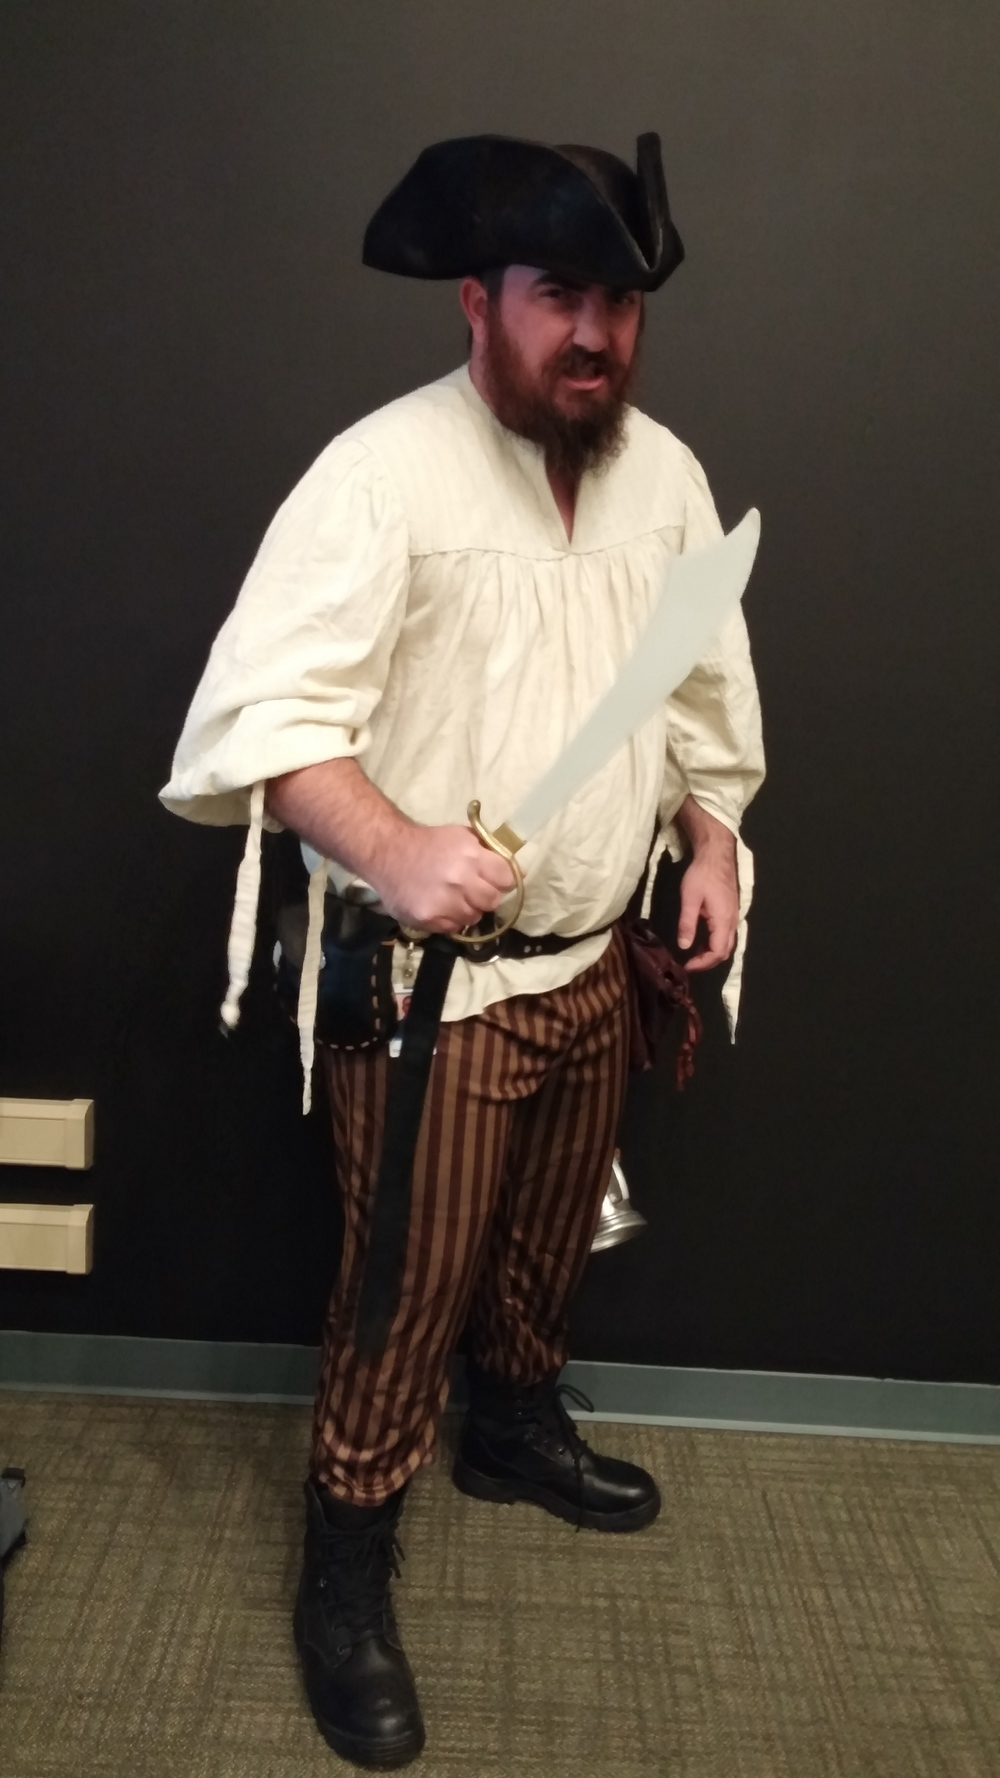 Dustin was a Pirate!